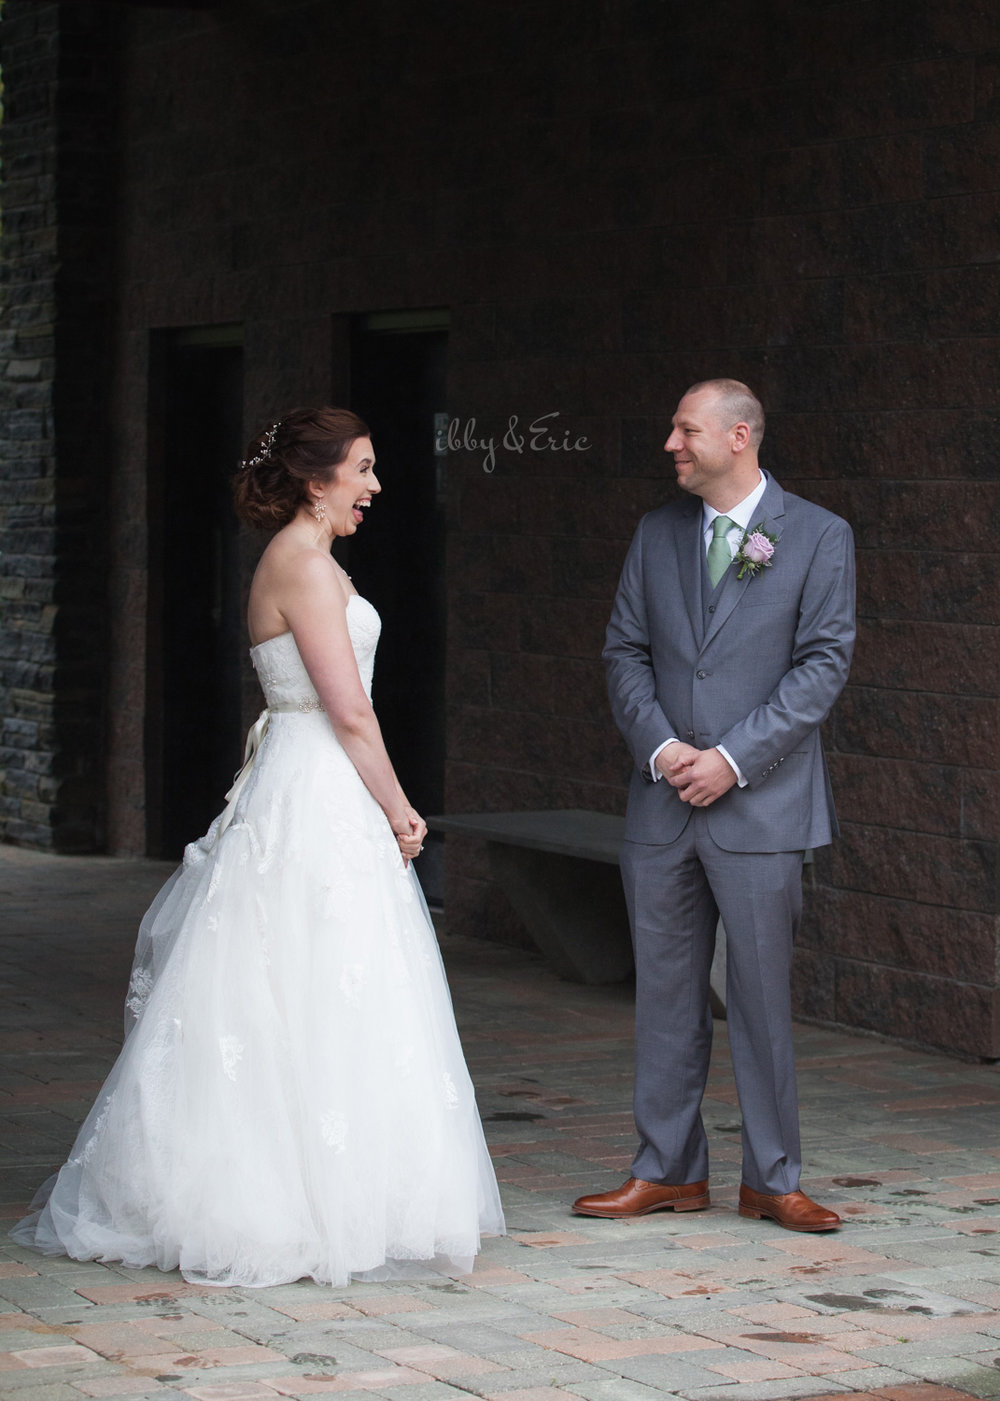 Groom in a gray suit smiles as he sees his bride in a lace wedding gown for the first time.